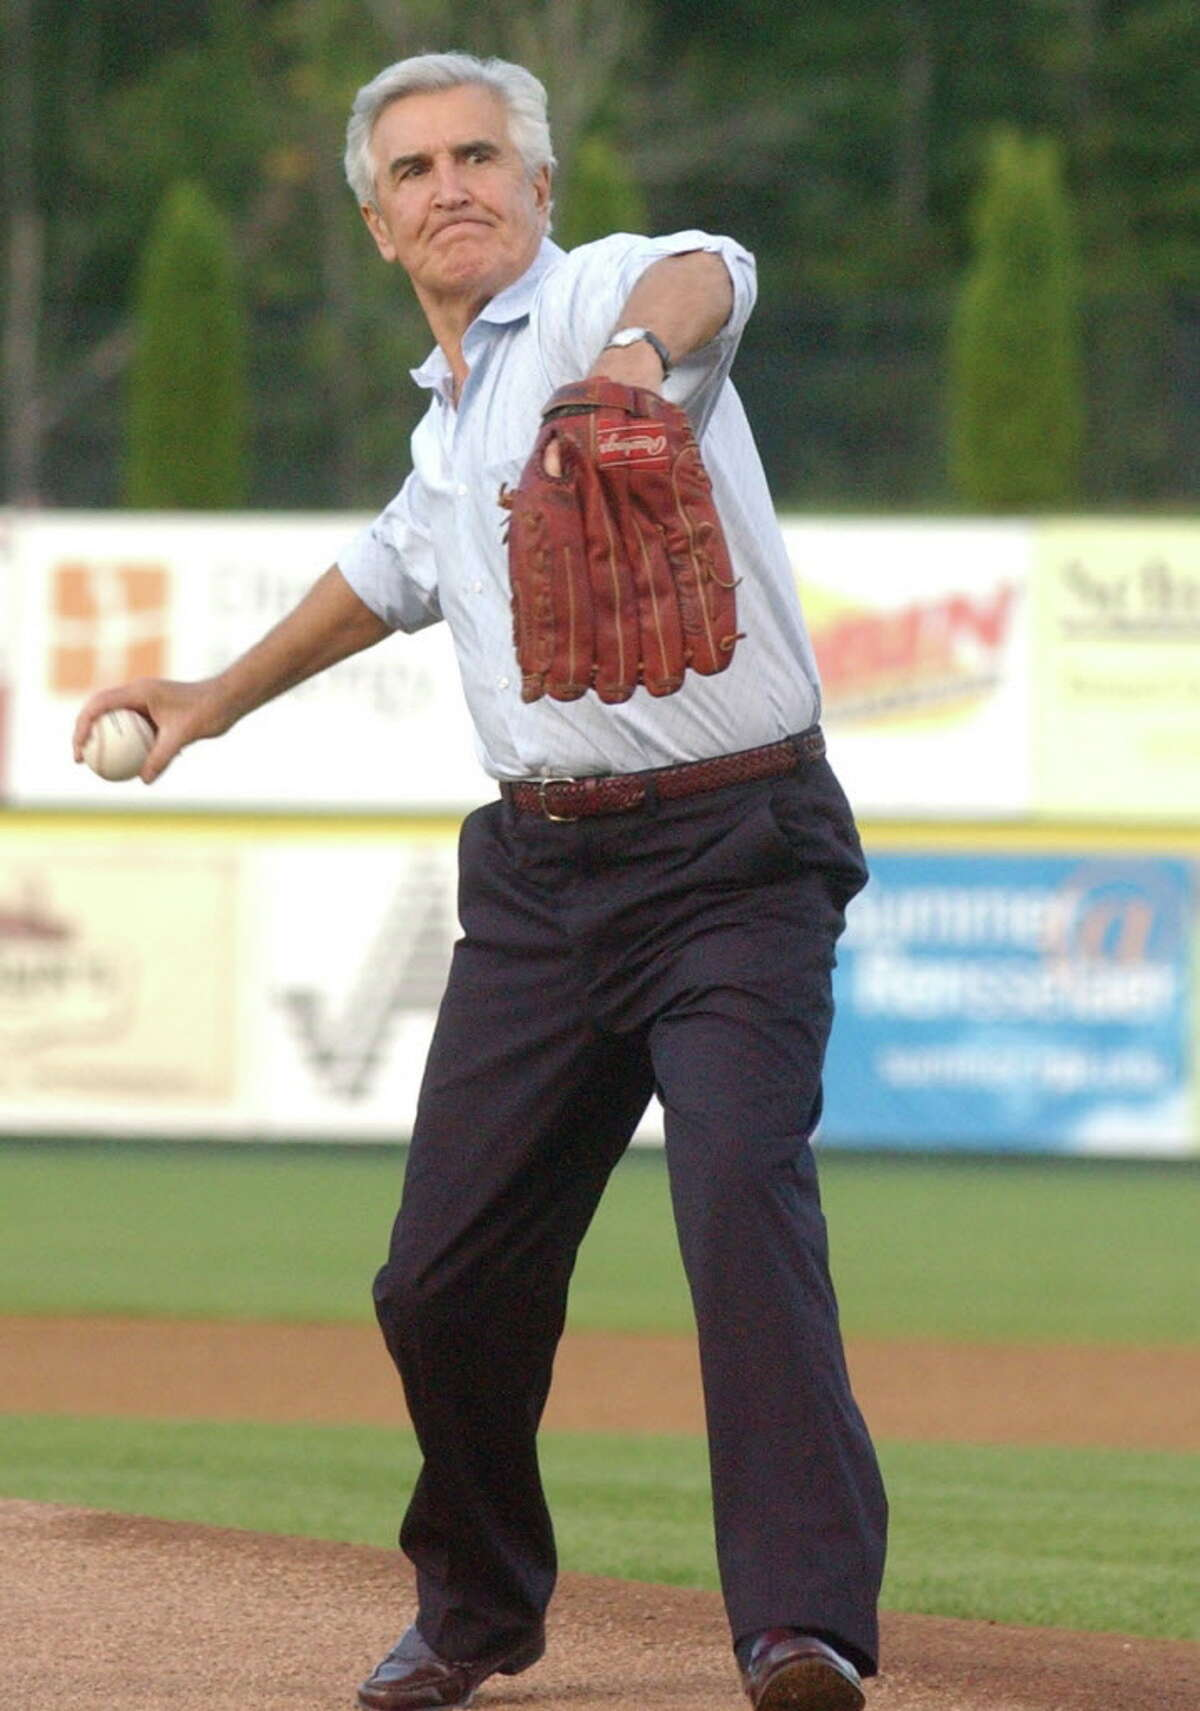 Shannon DeCelle Special to the Times Union Senator Joe Bruno throws out the first pitch of the final Valley Cats season game against the Oneanta Tigers Tuesday evening, Sept 4, 2007, at the Joe Bruno Field in Troy,New York.